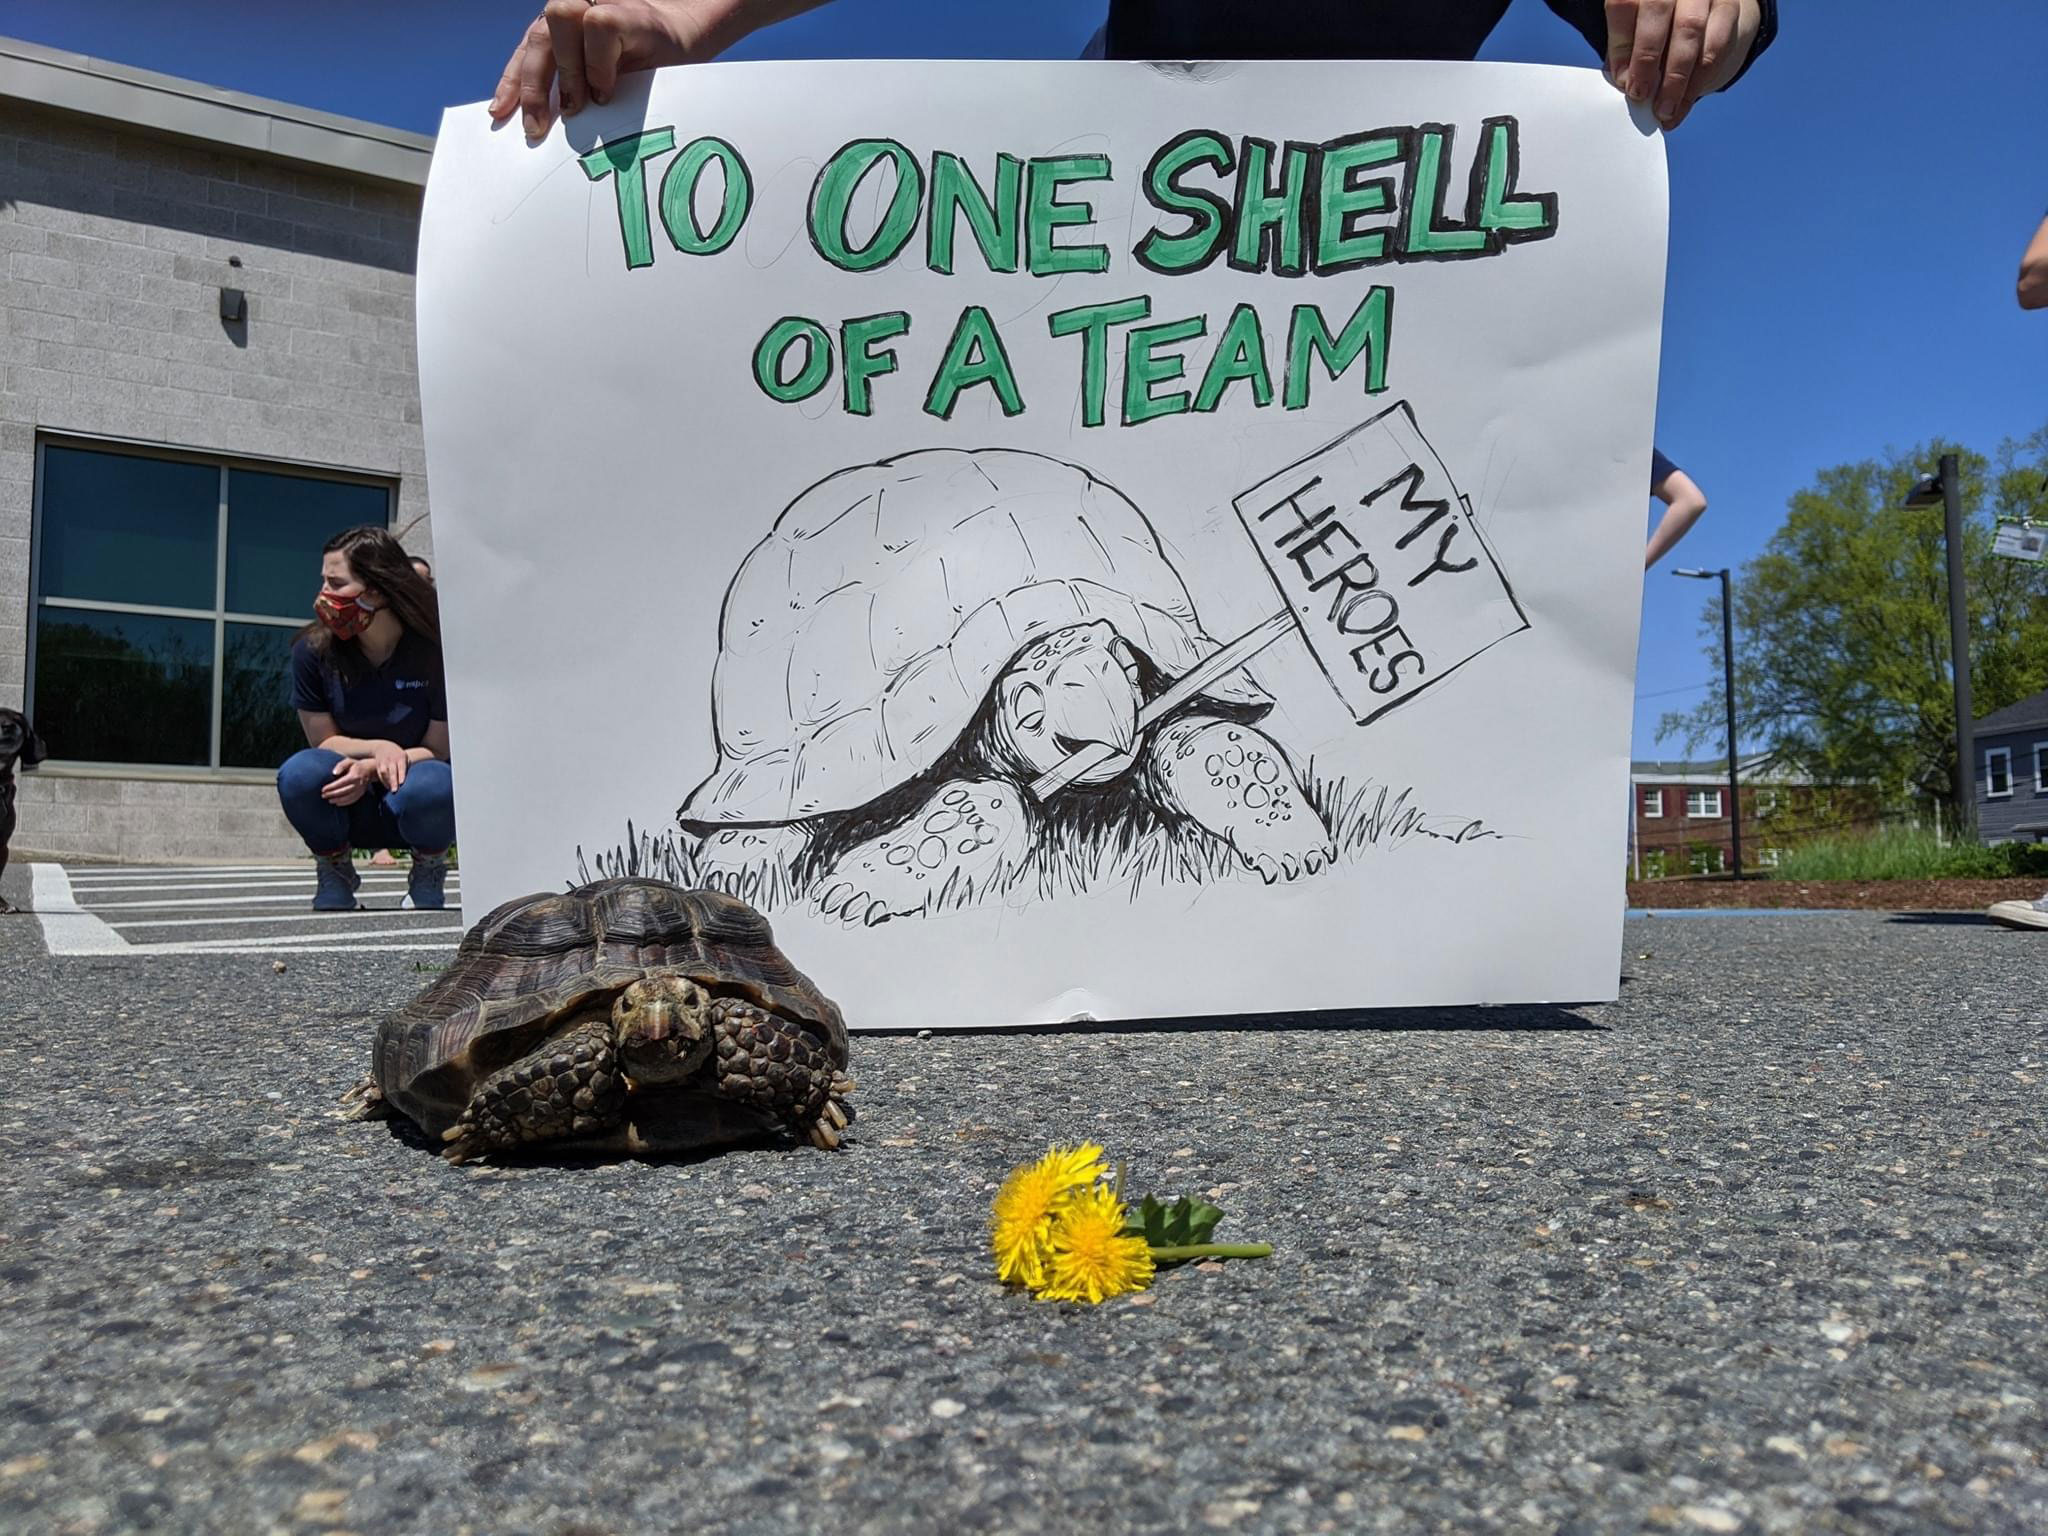 Ms. Jennifer, a 53-year-old tortoise, has found a new home after her owner died of Covid-19